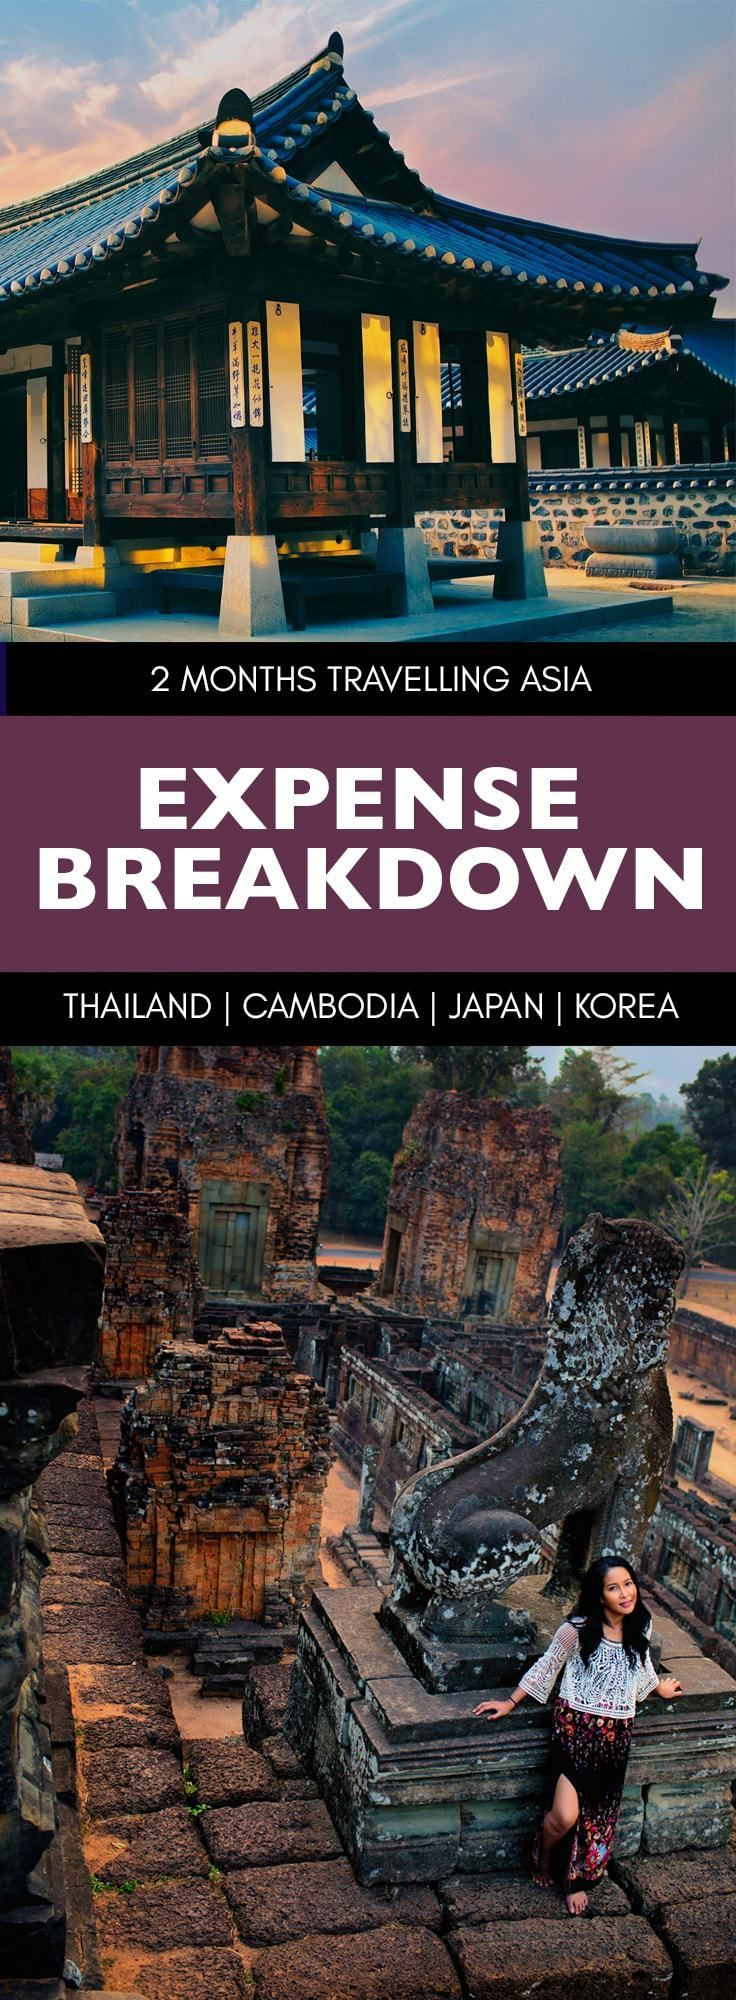 How much money do you need to travel Asia for 2 months? Breakdown of the cost of travelling in Thailand, Cambodia, Japan and South Korea for 2 months. Asia Travel Itinerary with tips.